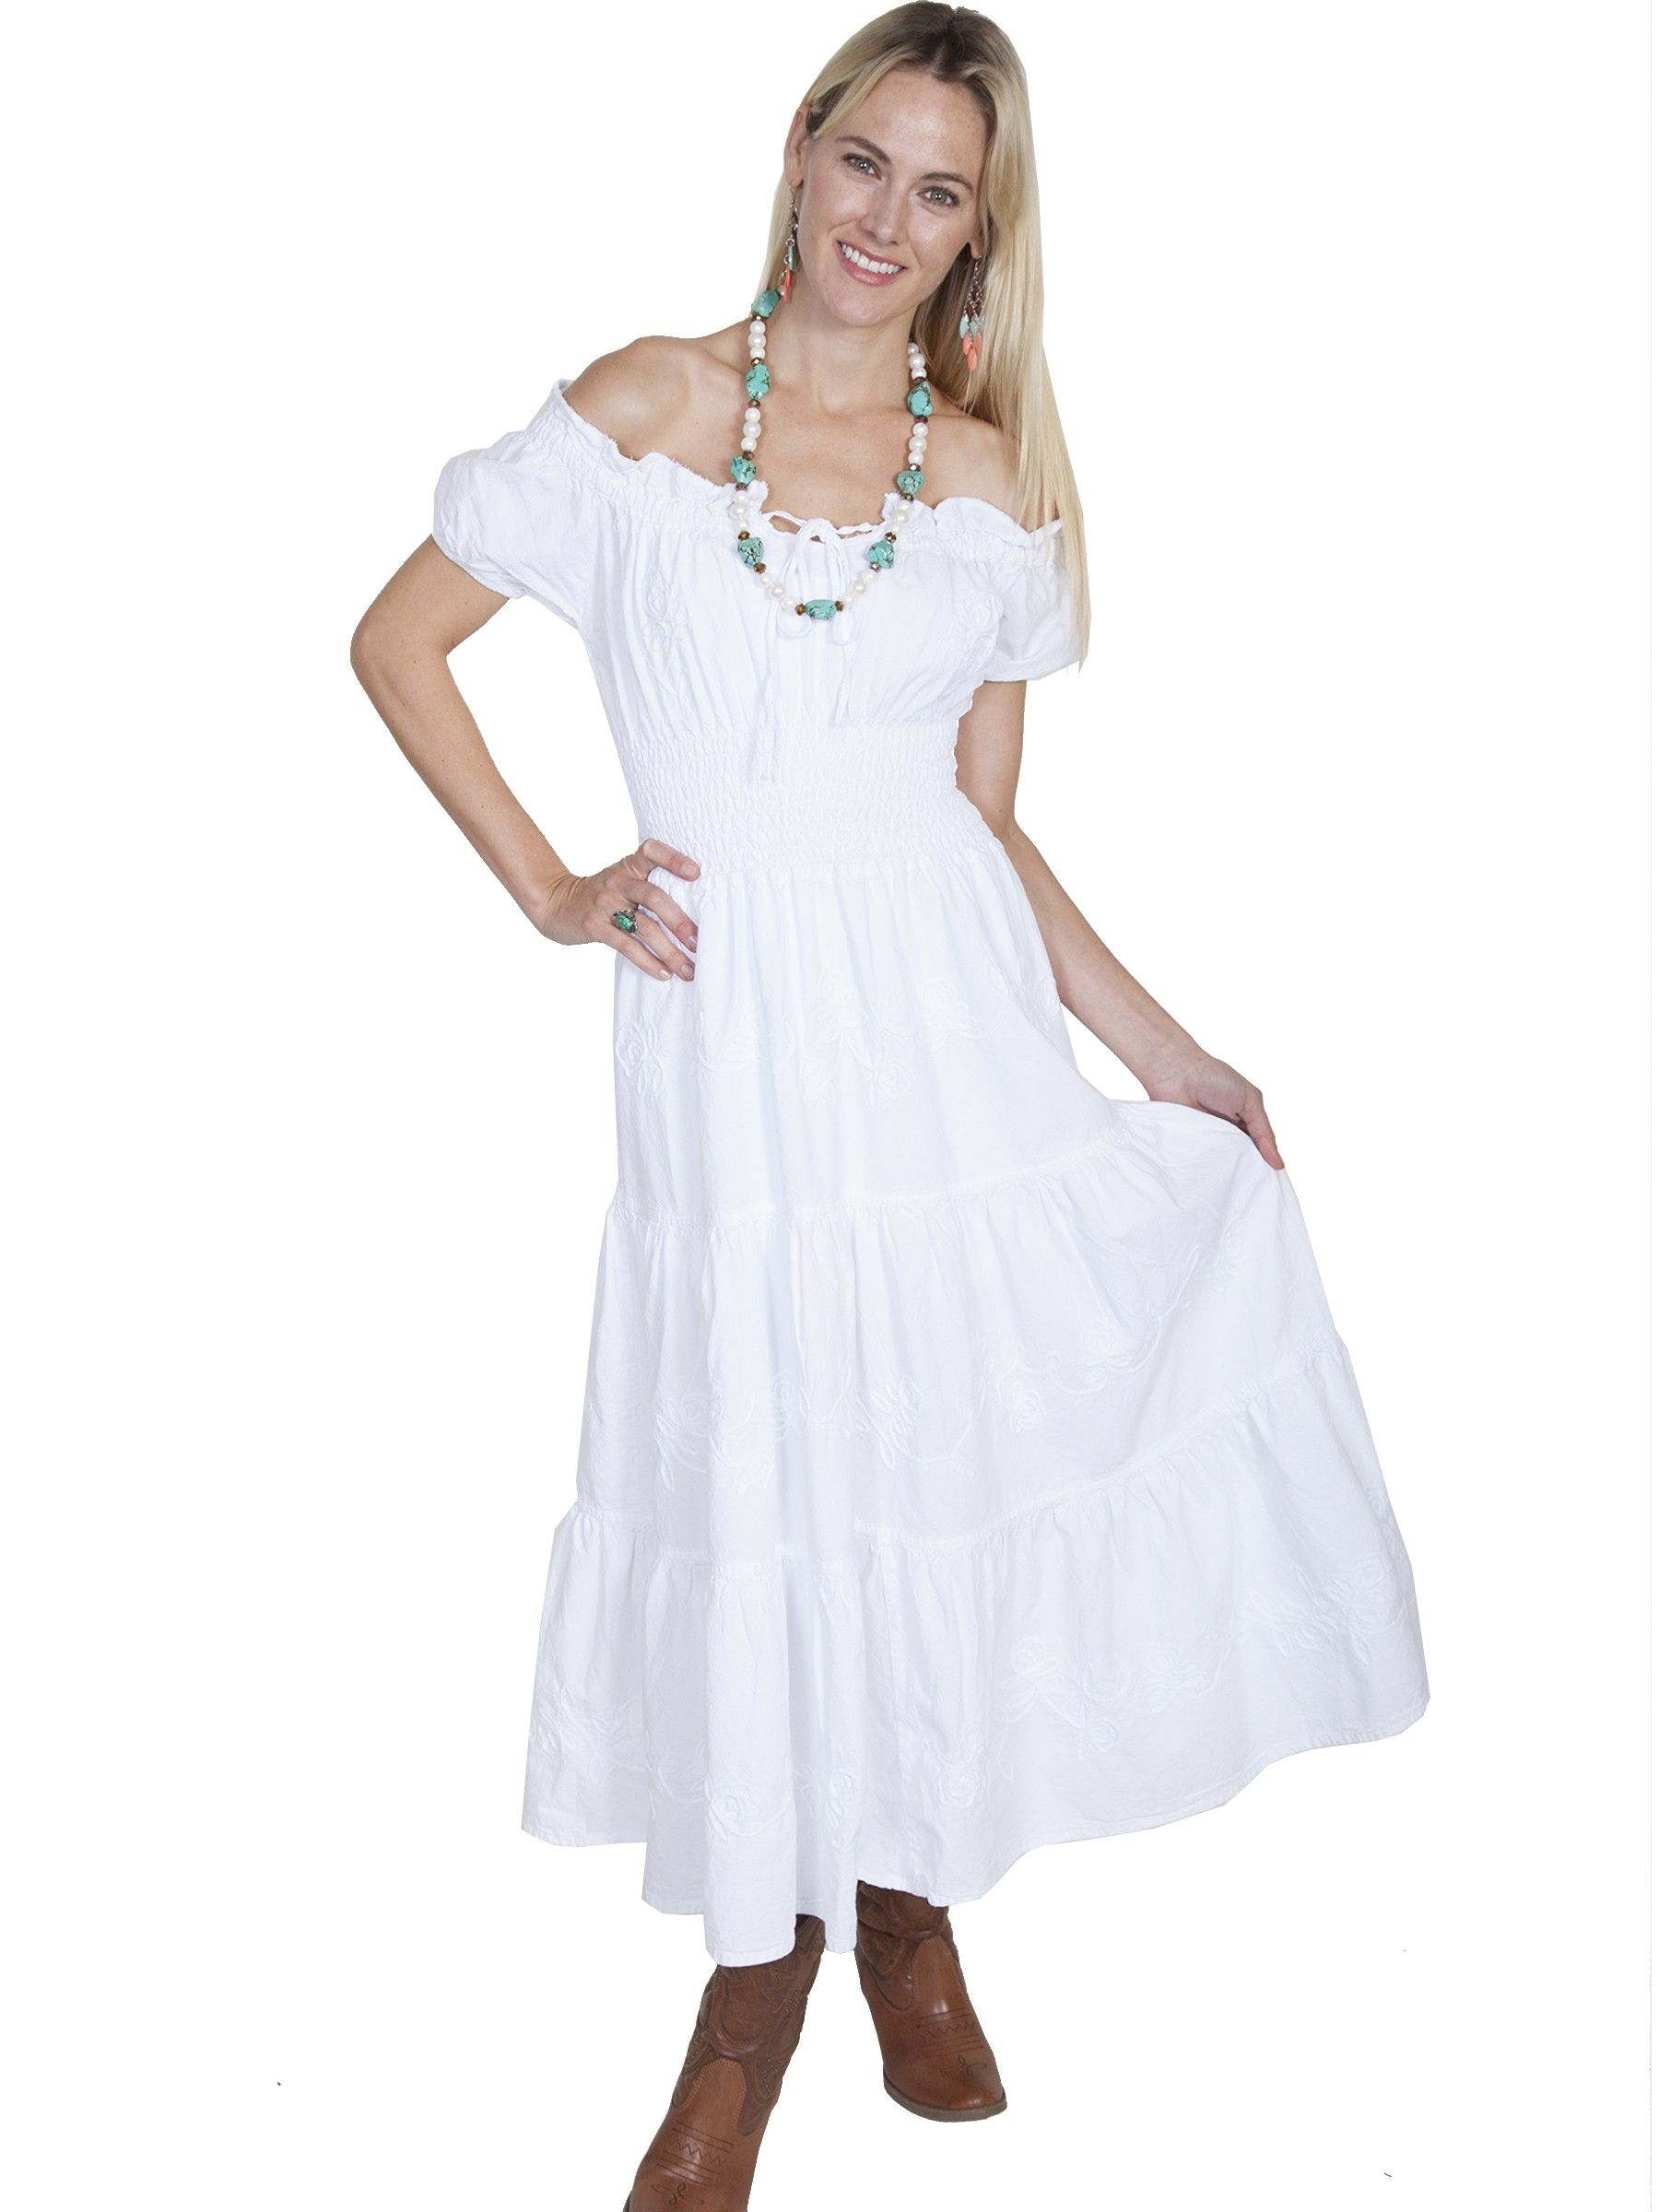 Cowgirl Western Style Wedding Dresses Prairie Boho Victorian Vintage Scully Leather: Off White Western Wedding Dresses At Websimilar.org